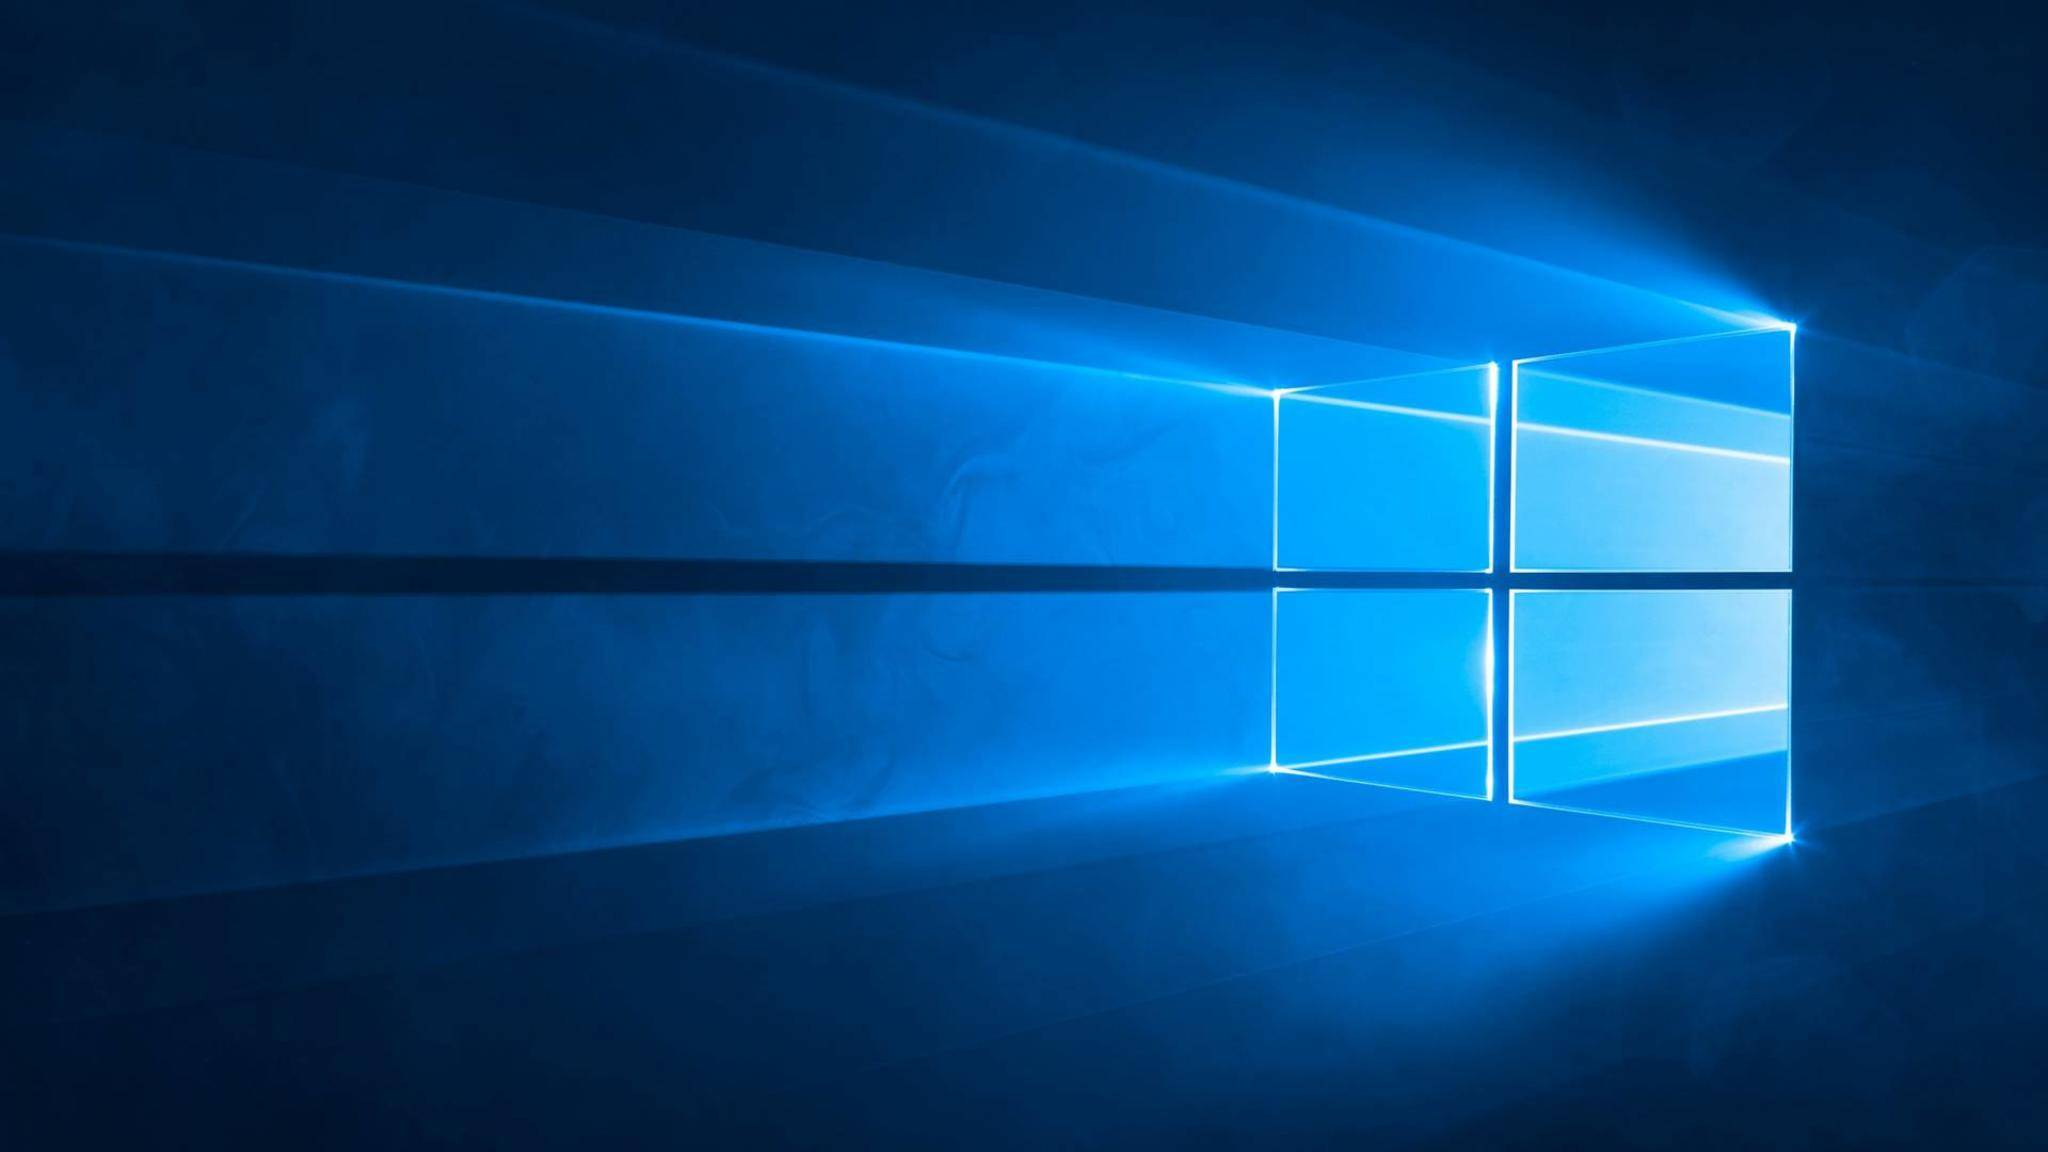 Windows 10 bekommt einen Ultimate-Performance-Modus für maximale Power.